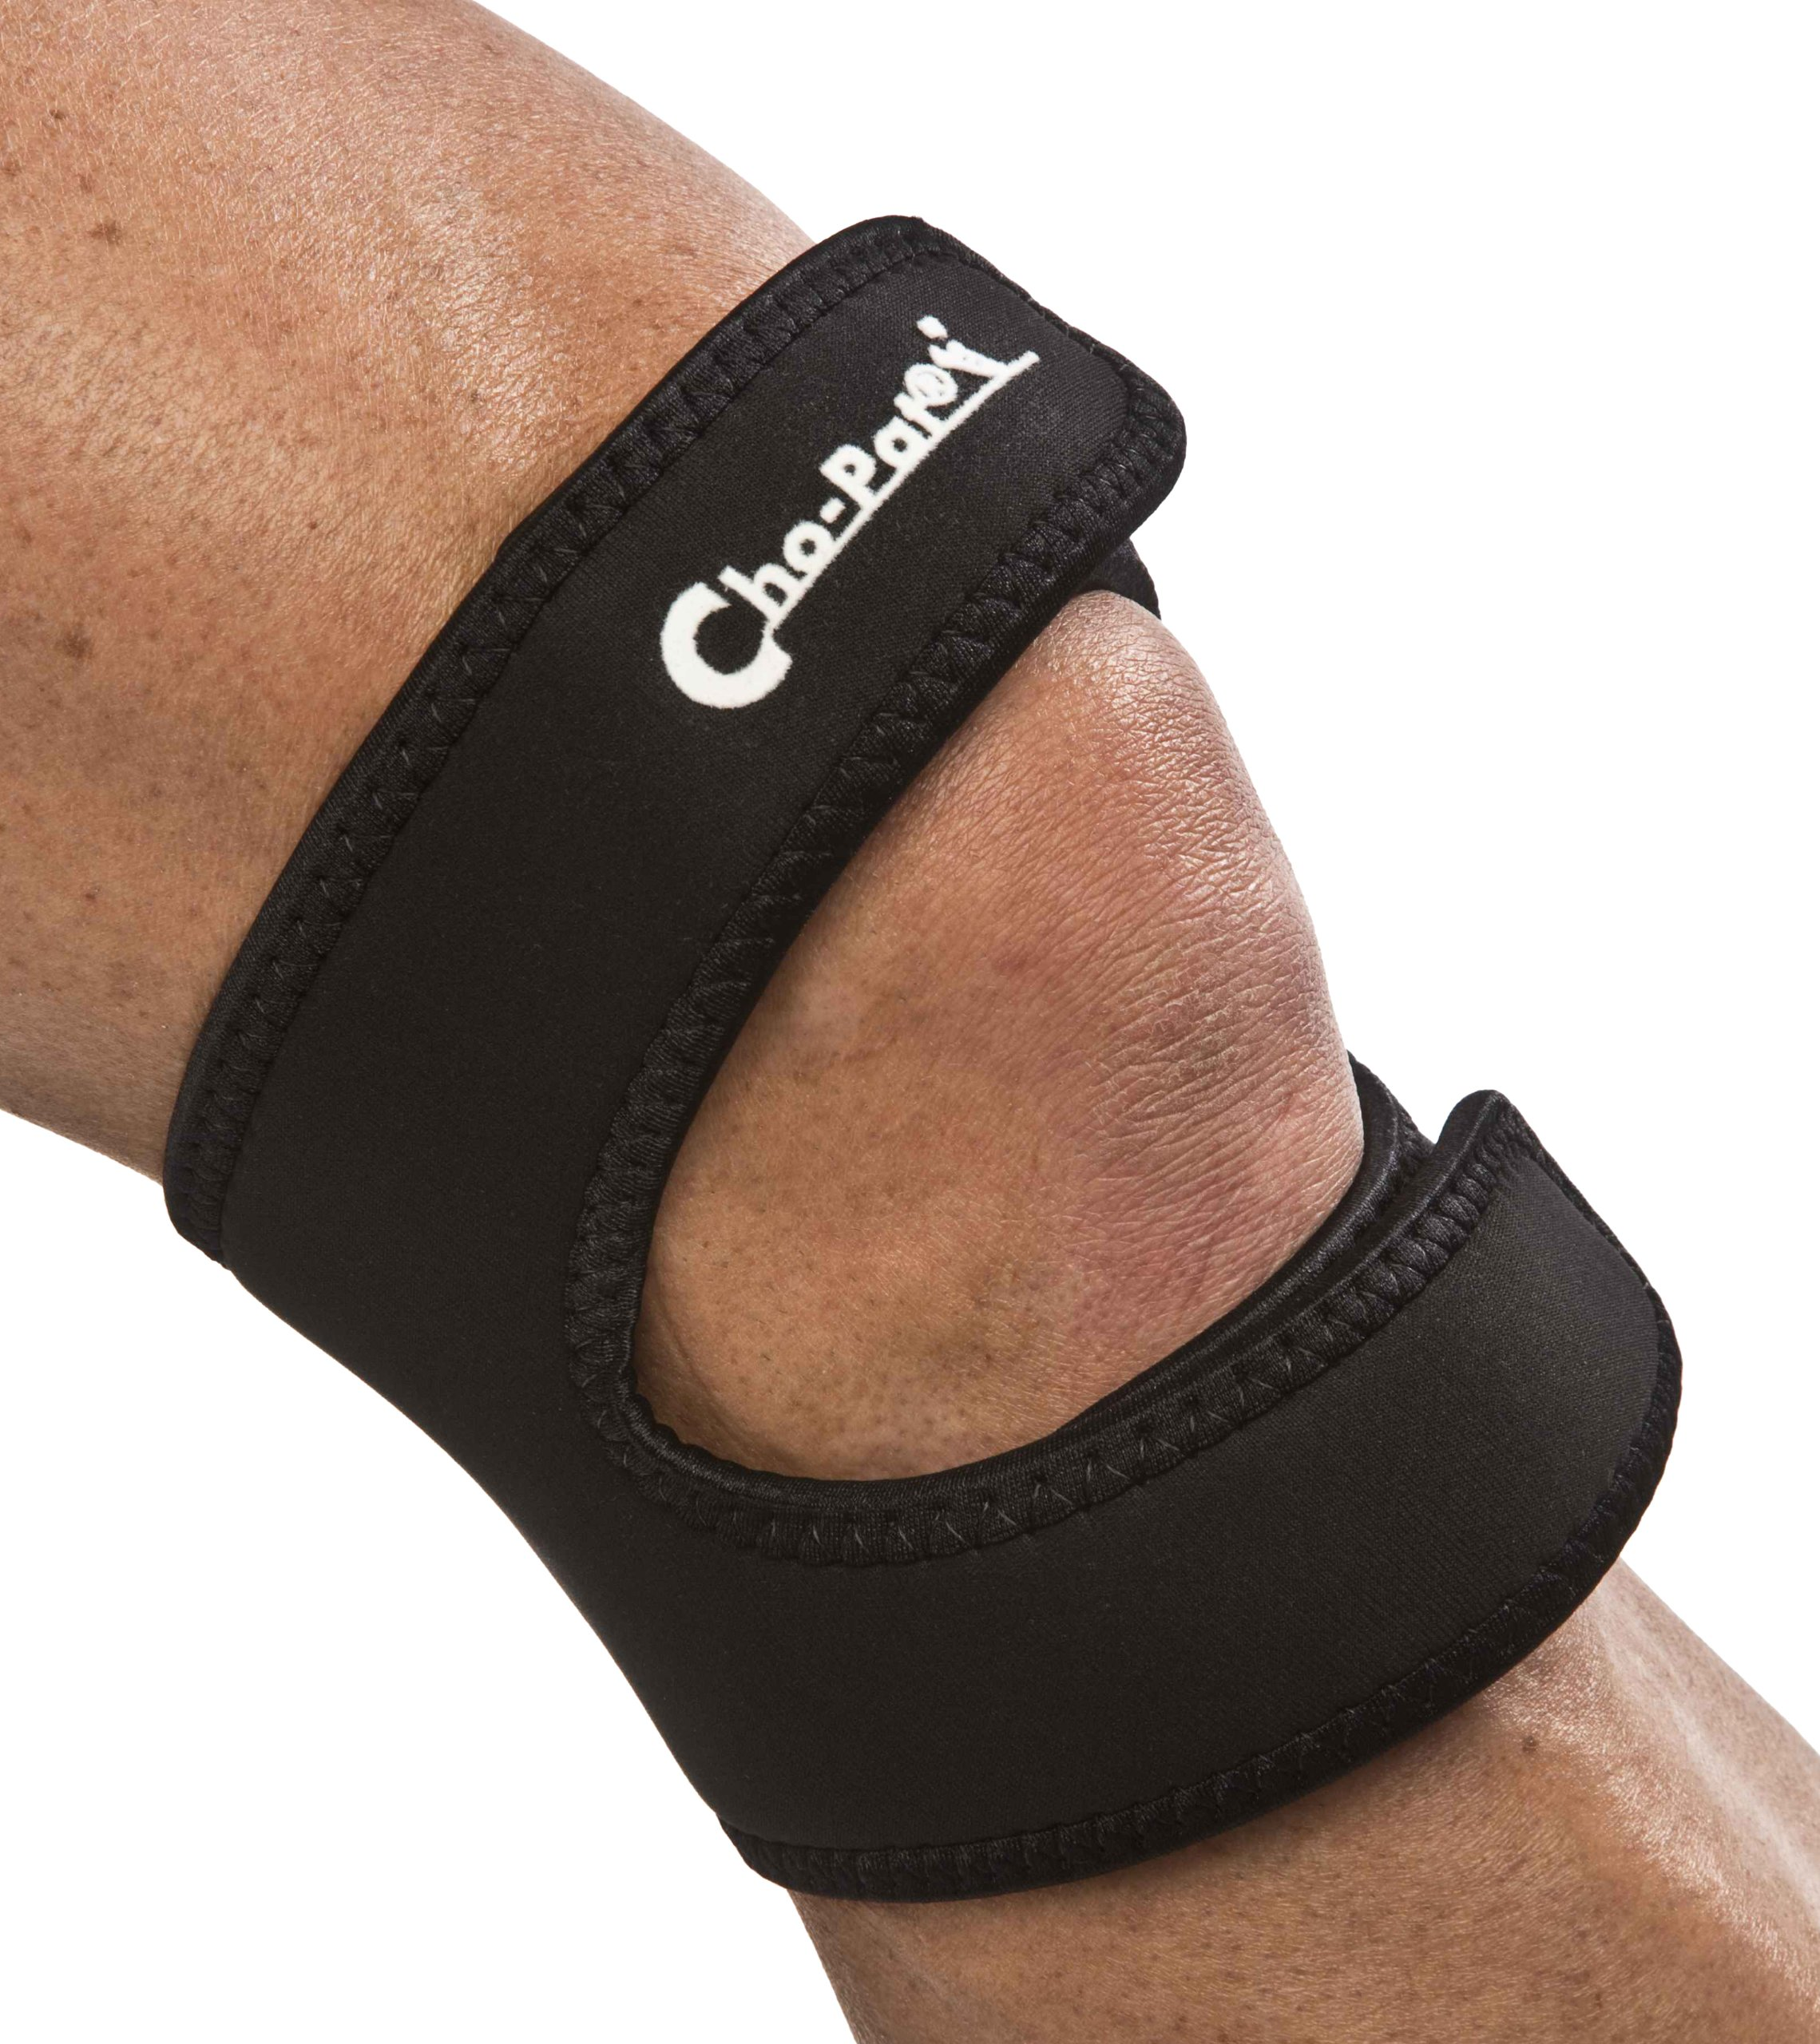 Cho-Pat Dual Action Knee Strap - Provides Full Mobility & Pain Relief For Weakened Knees - Black (Large, 16''-18'')